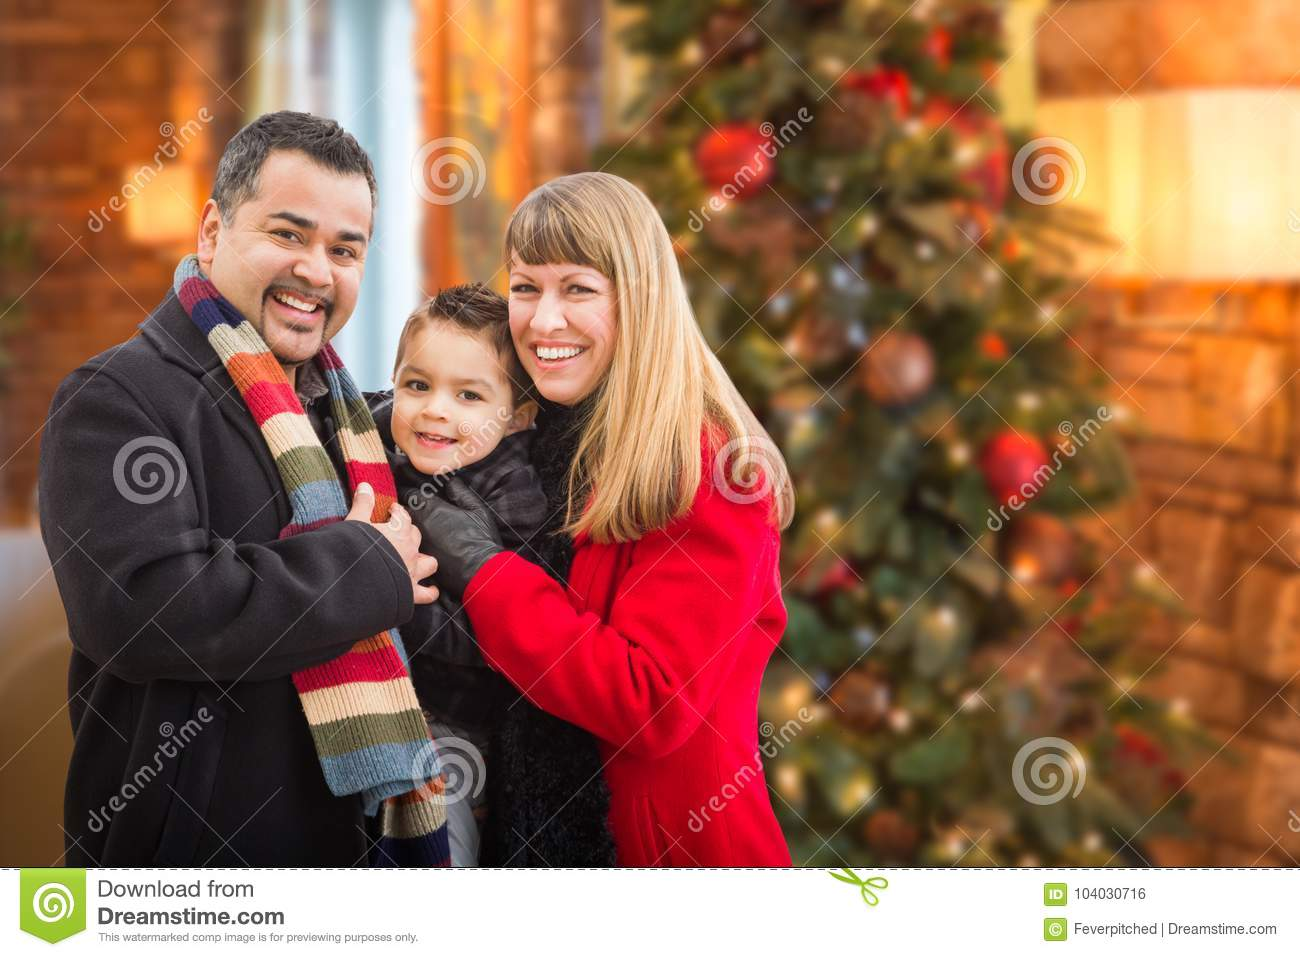 Young Mixed Race Family Portrait In Front of Christmas Tree Indoors.